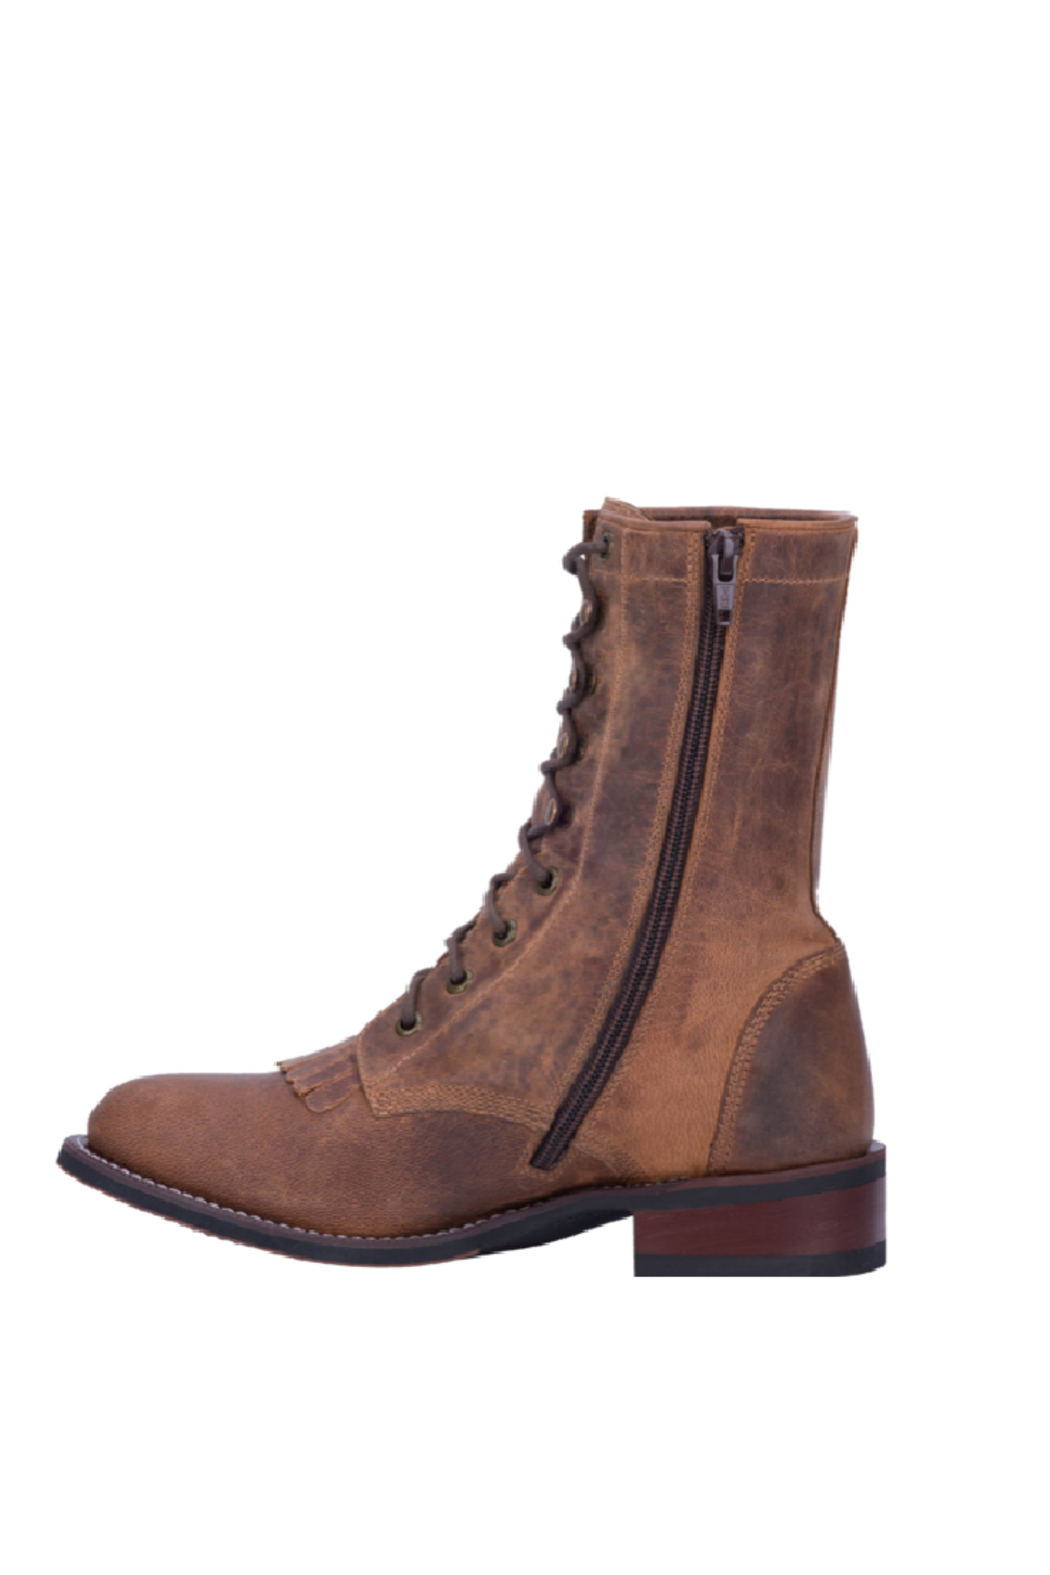 Dan Post Boot Company Sara Rose Boots - Side Cropped Image